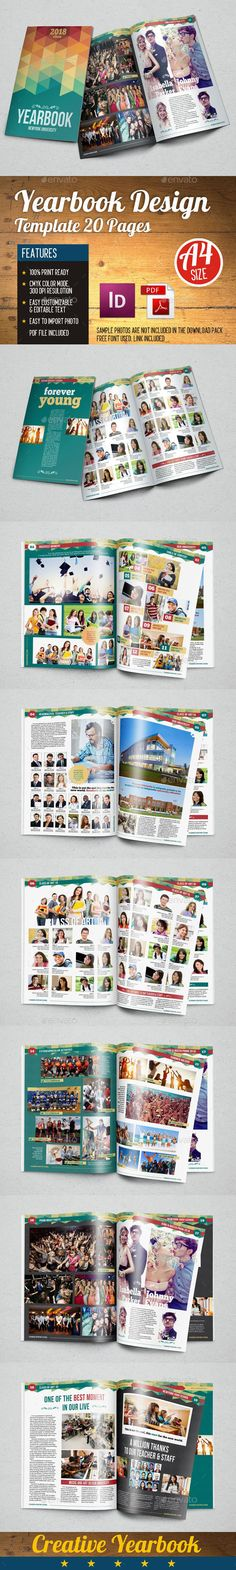 YearBook Template InDesign INDD #design Download: http://graphicriver.net/item/yearbook-template-design-vol-1/13392208?ref=ksioks